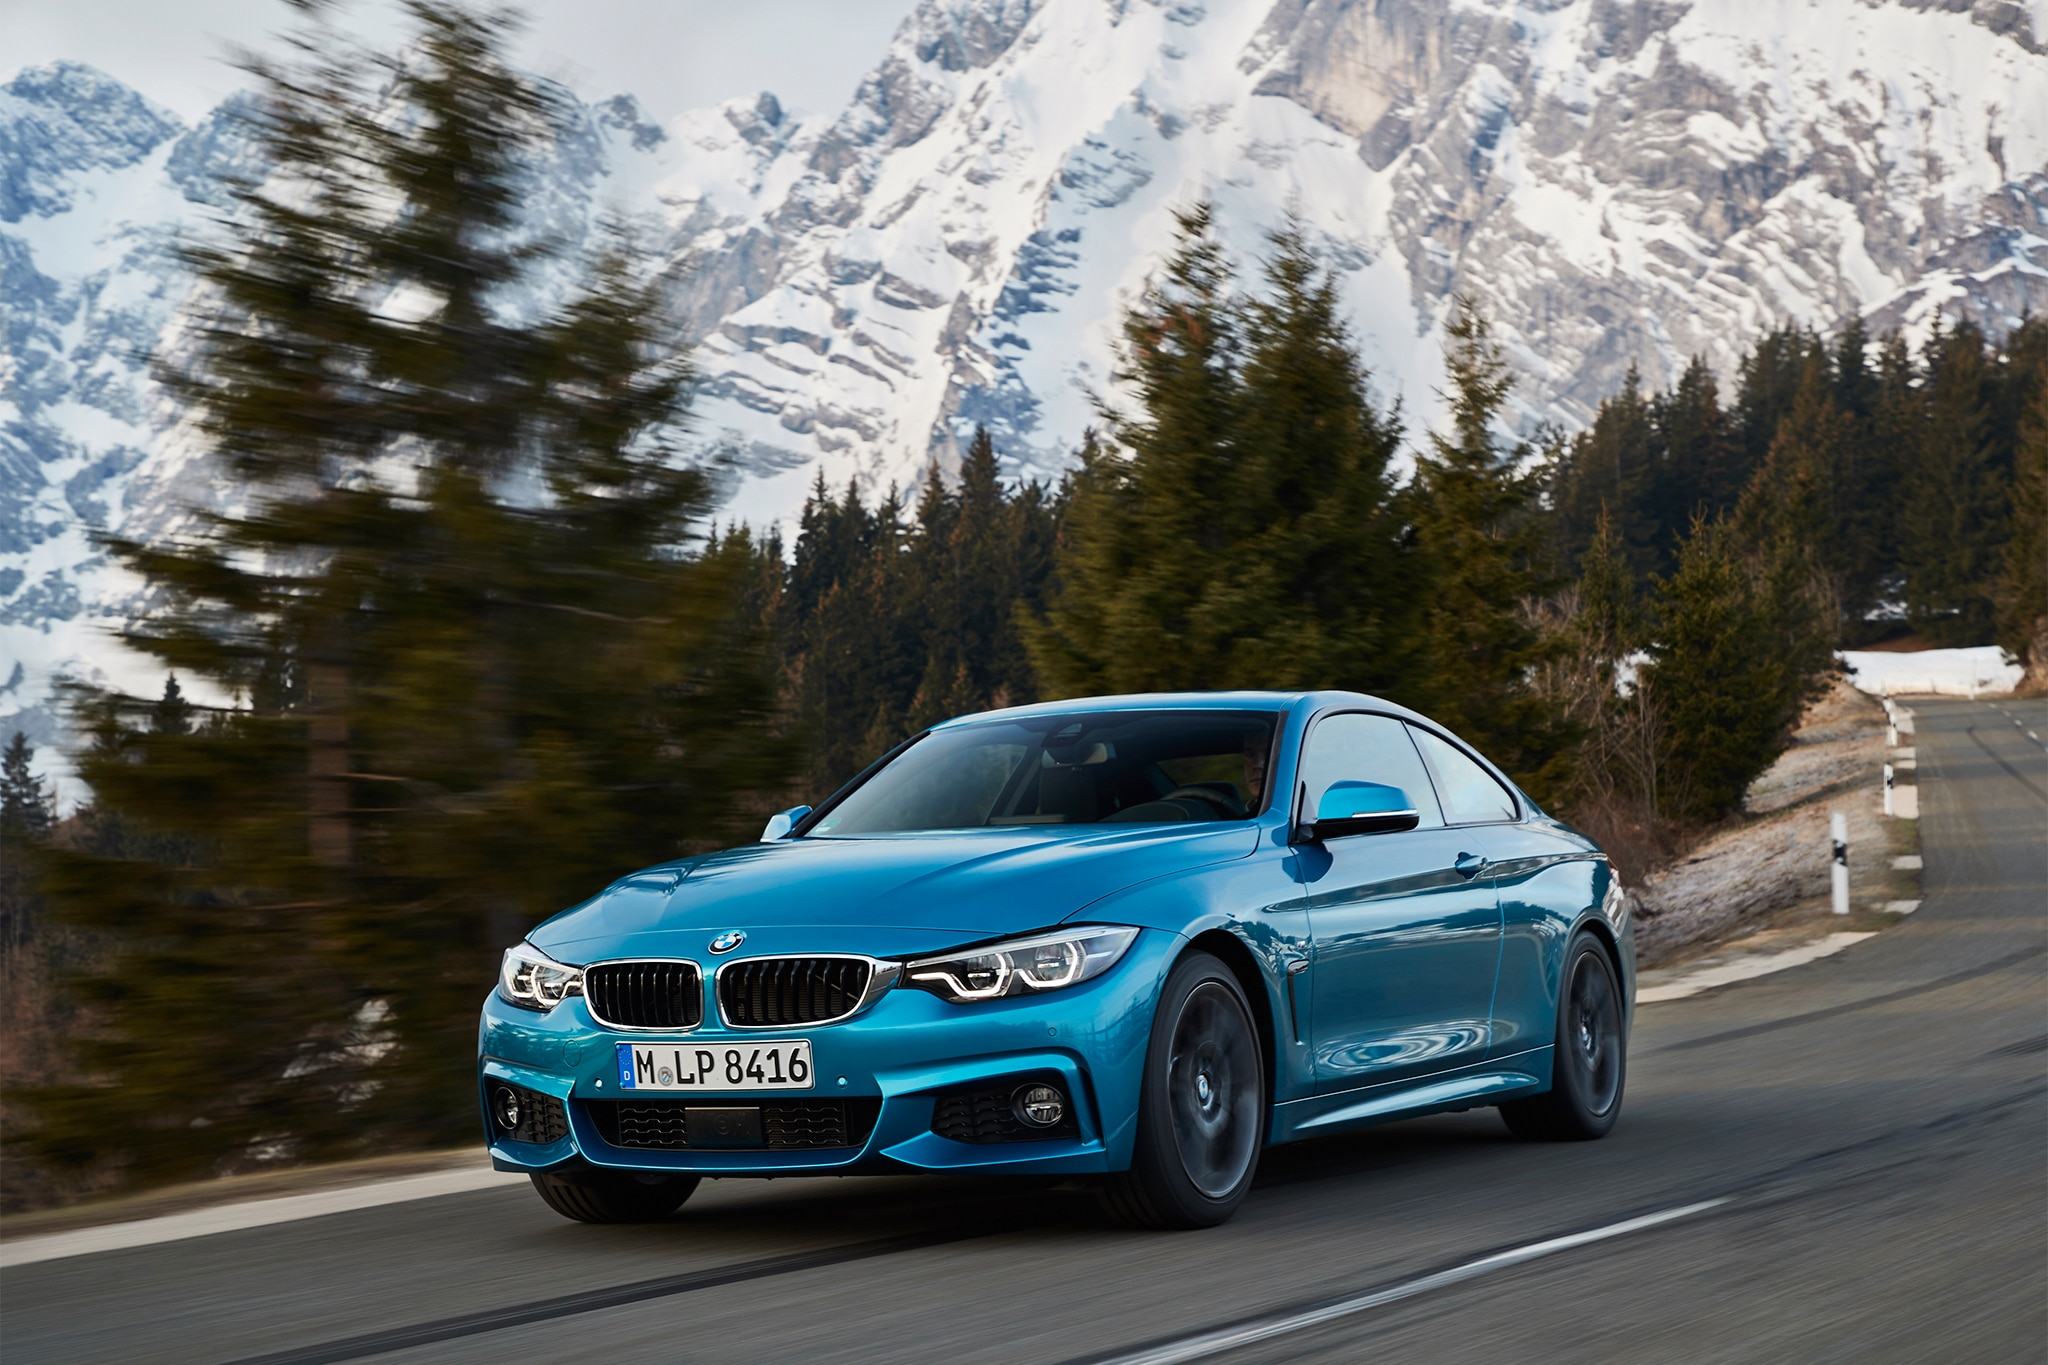 2018 Bmw 4 Series Review >> First Drive: 2018 BMW 440i Coupe | Automobile Magazine